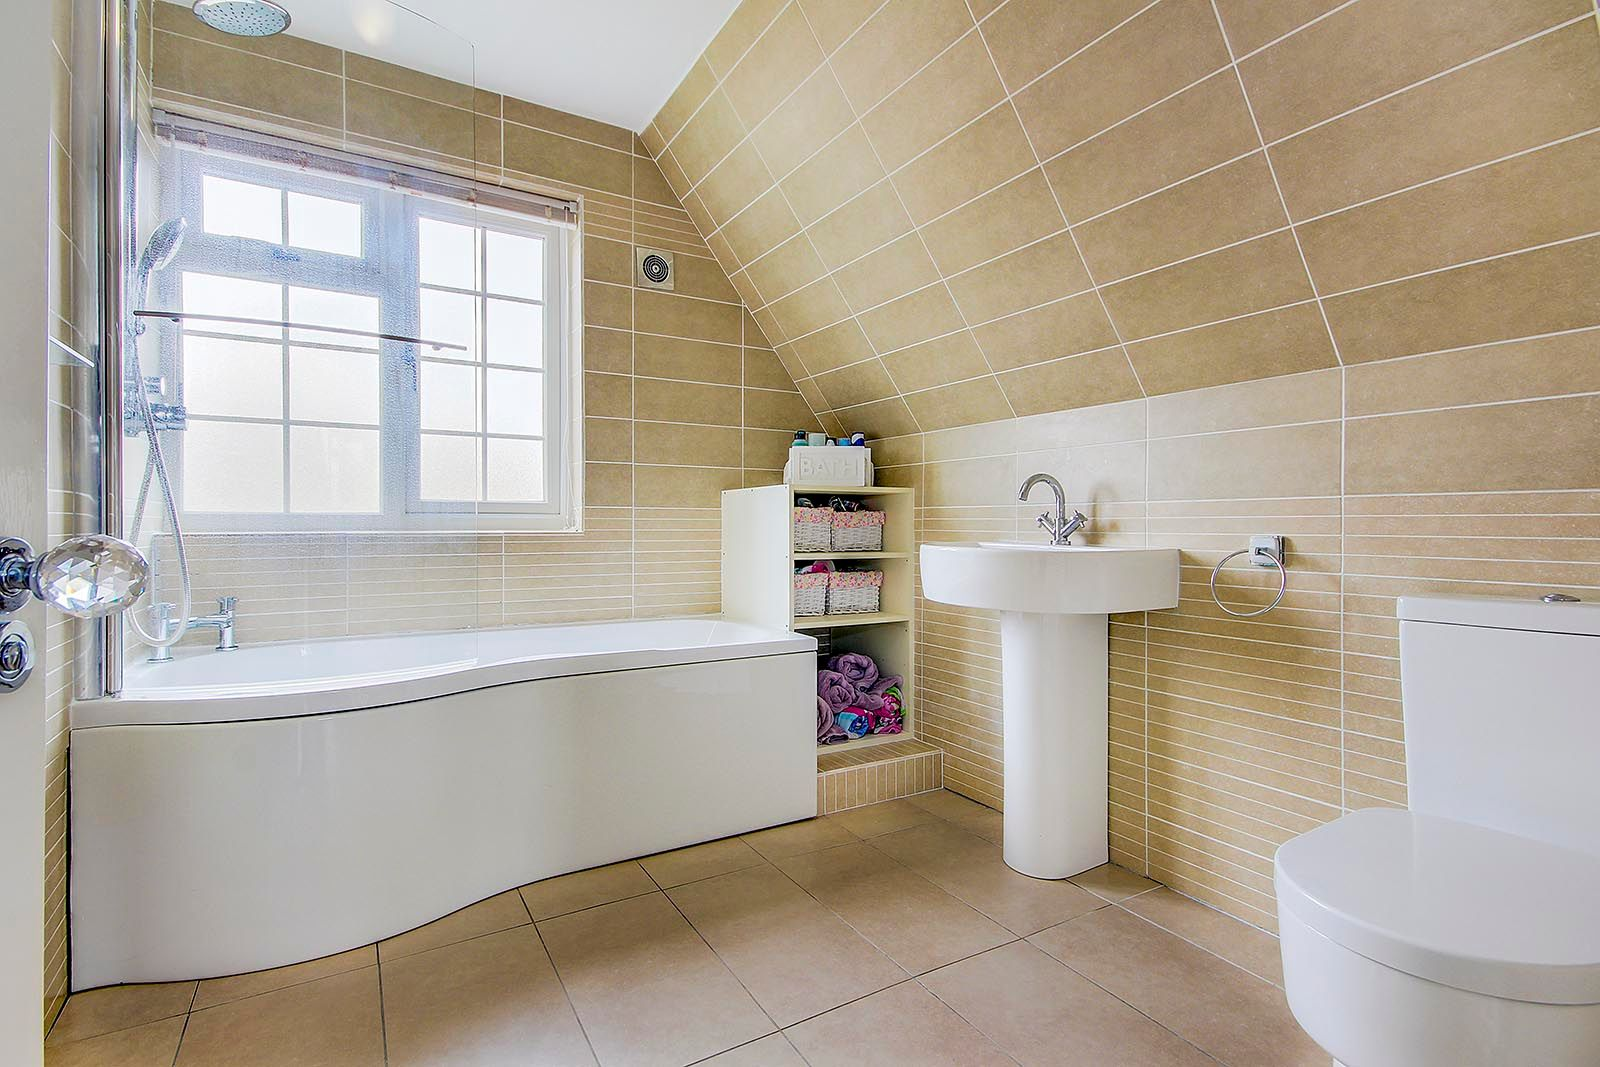 3 bed house for sale in Woodlands Close (COMP AUG 19) 8